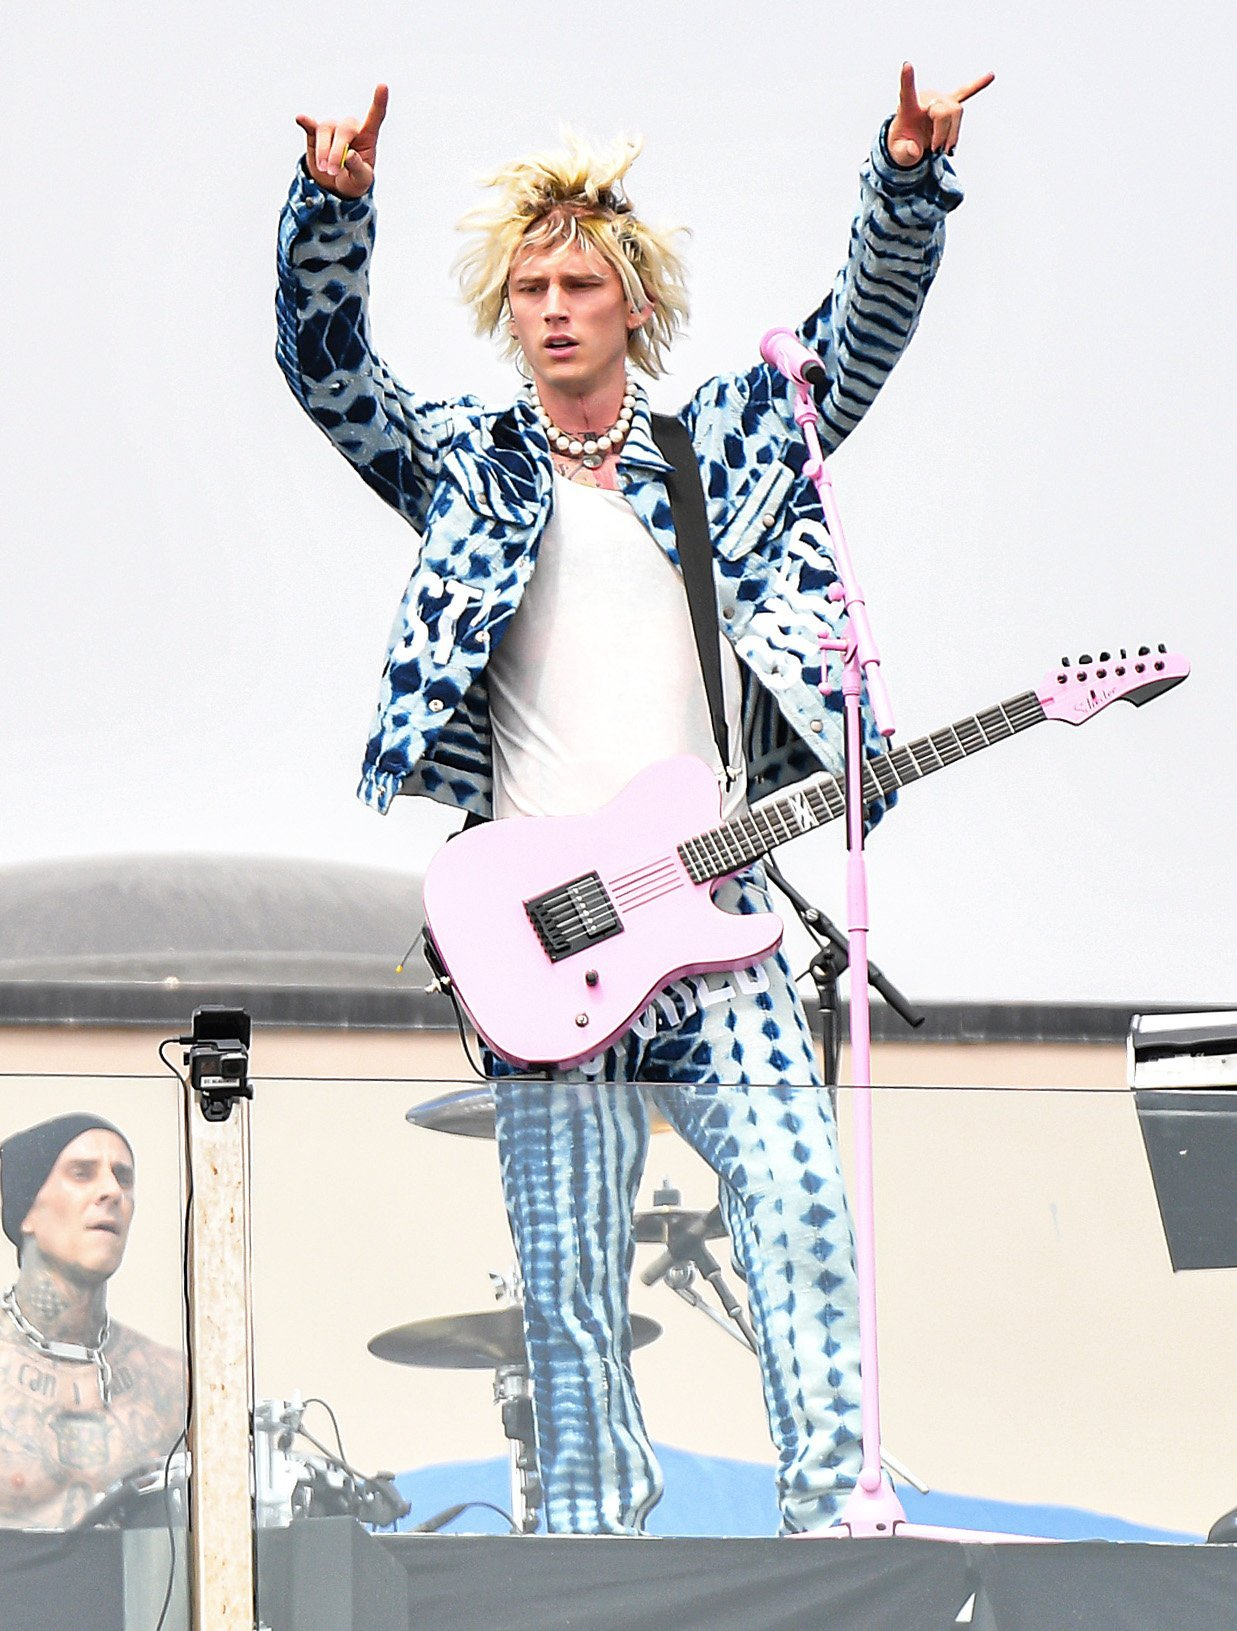 Machine Gun Kelly wears blue and white tie-dye-style jacket and matching pants